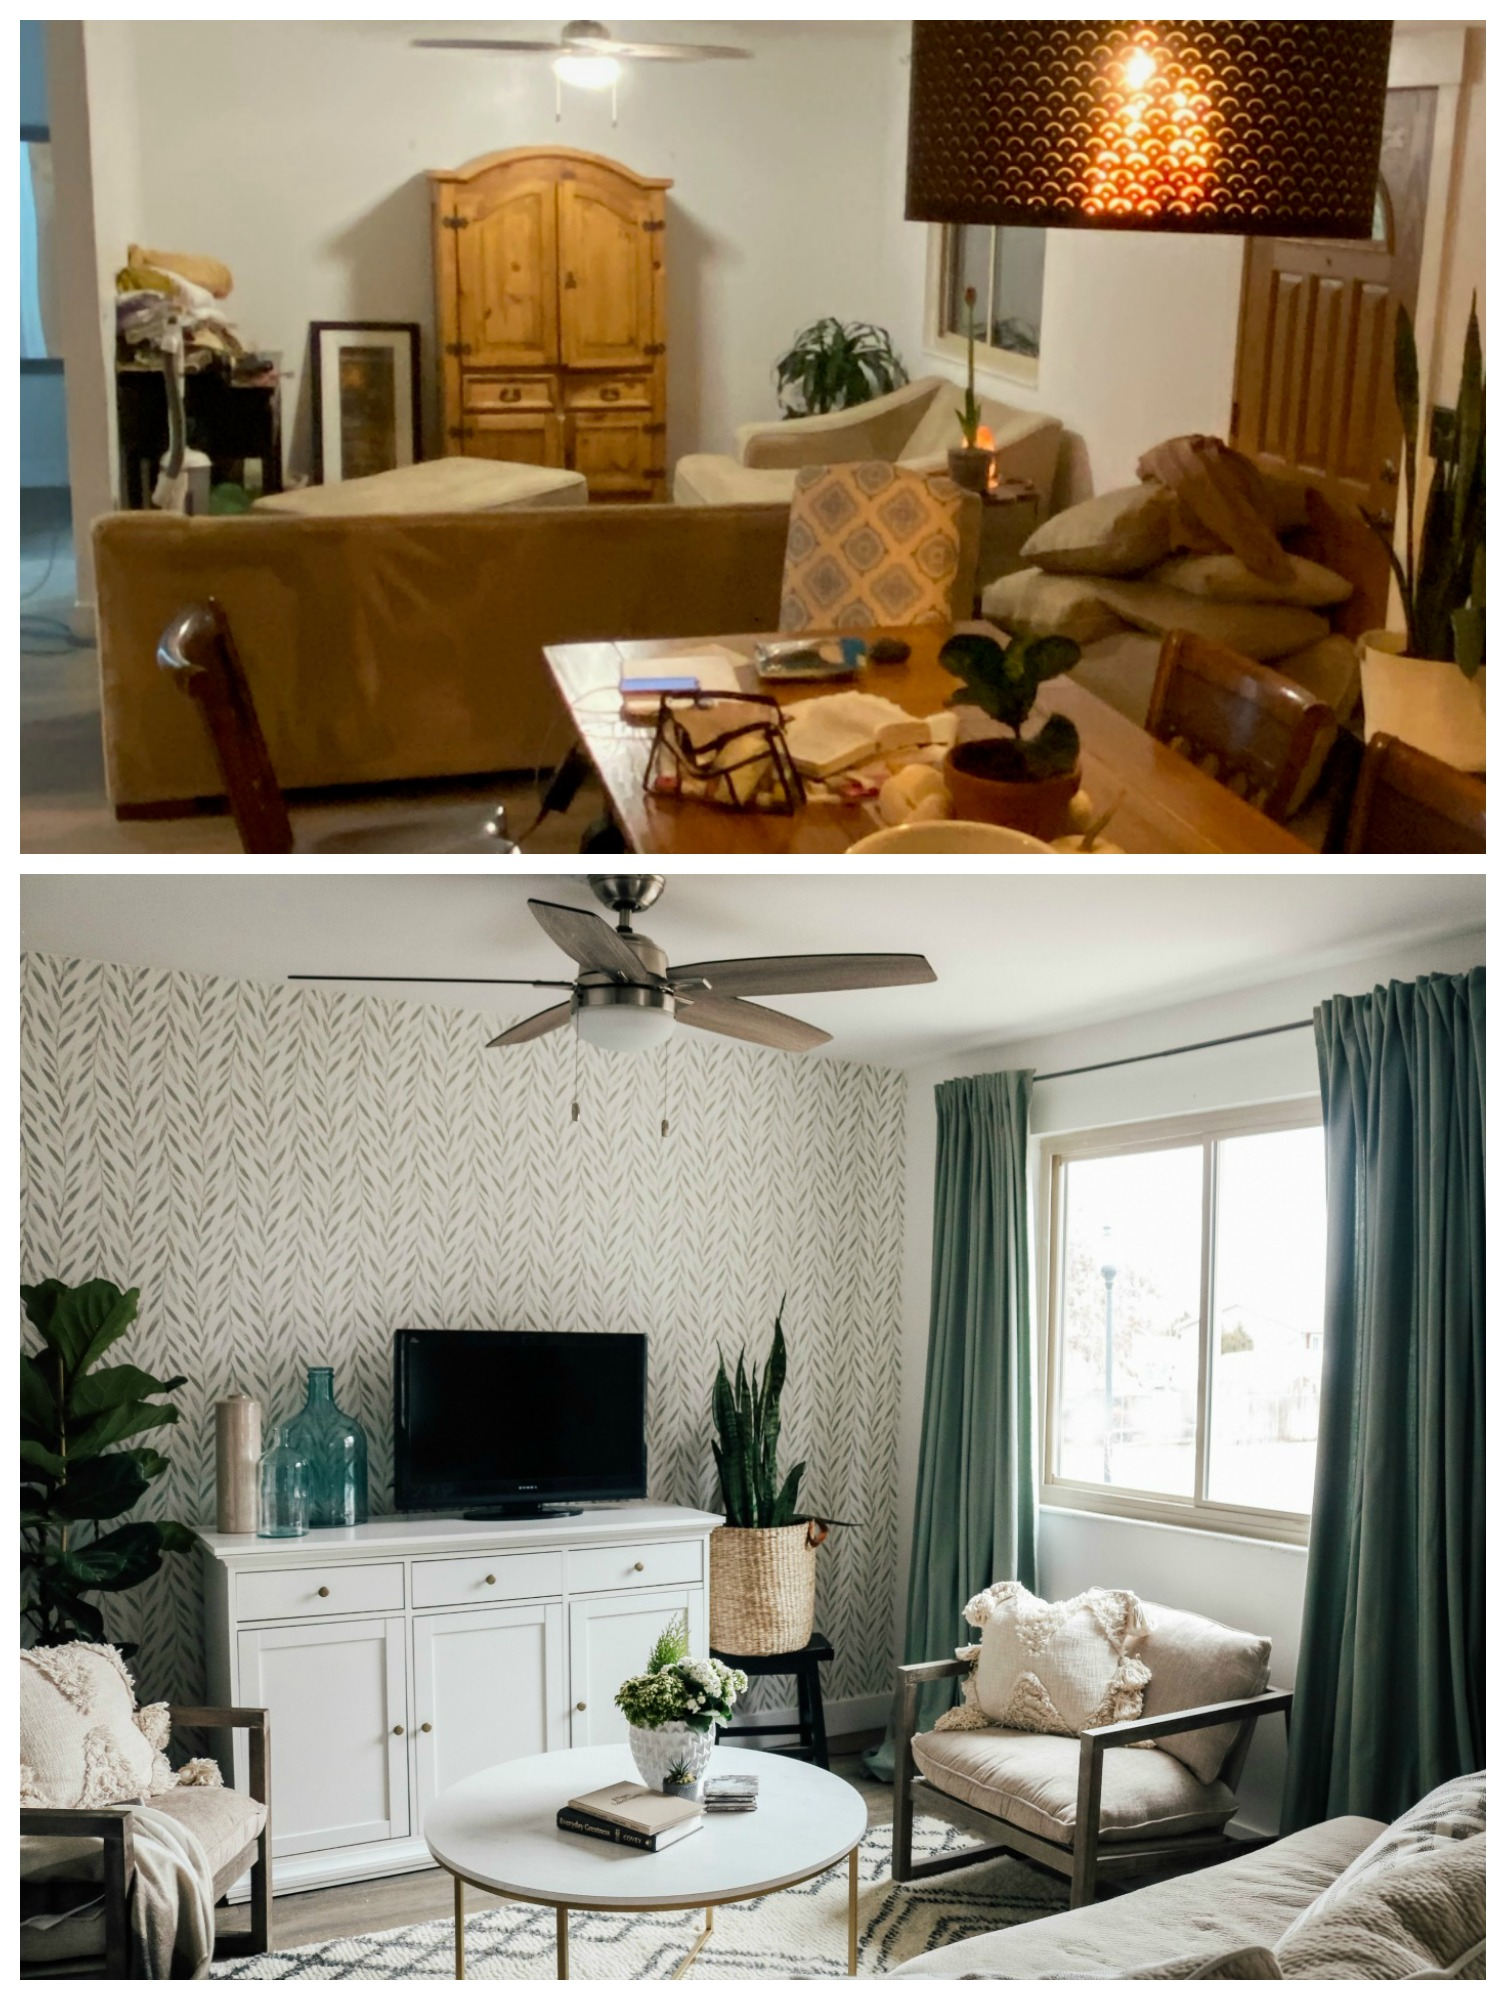 Mini Affordable Living Room Update with Joanna Gaines Wallpaper